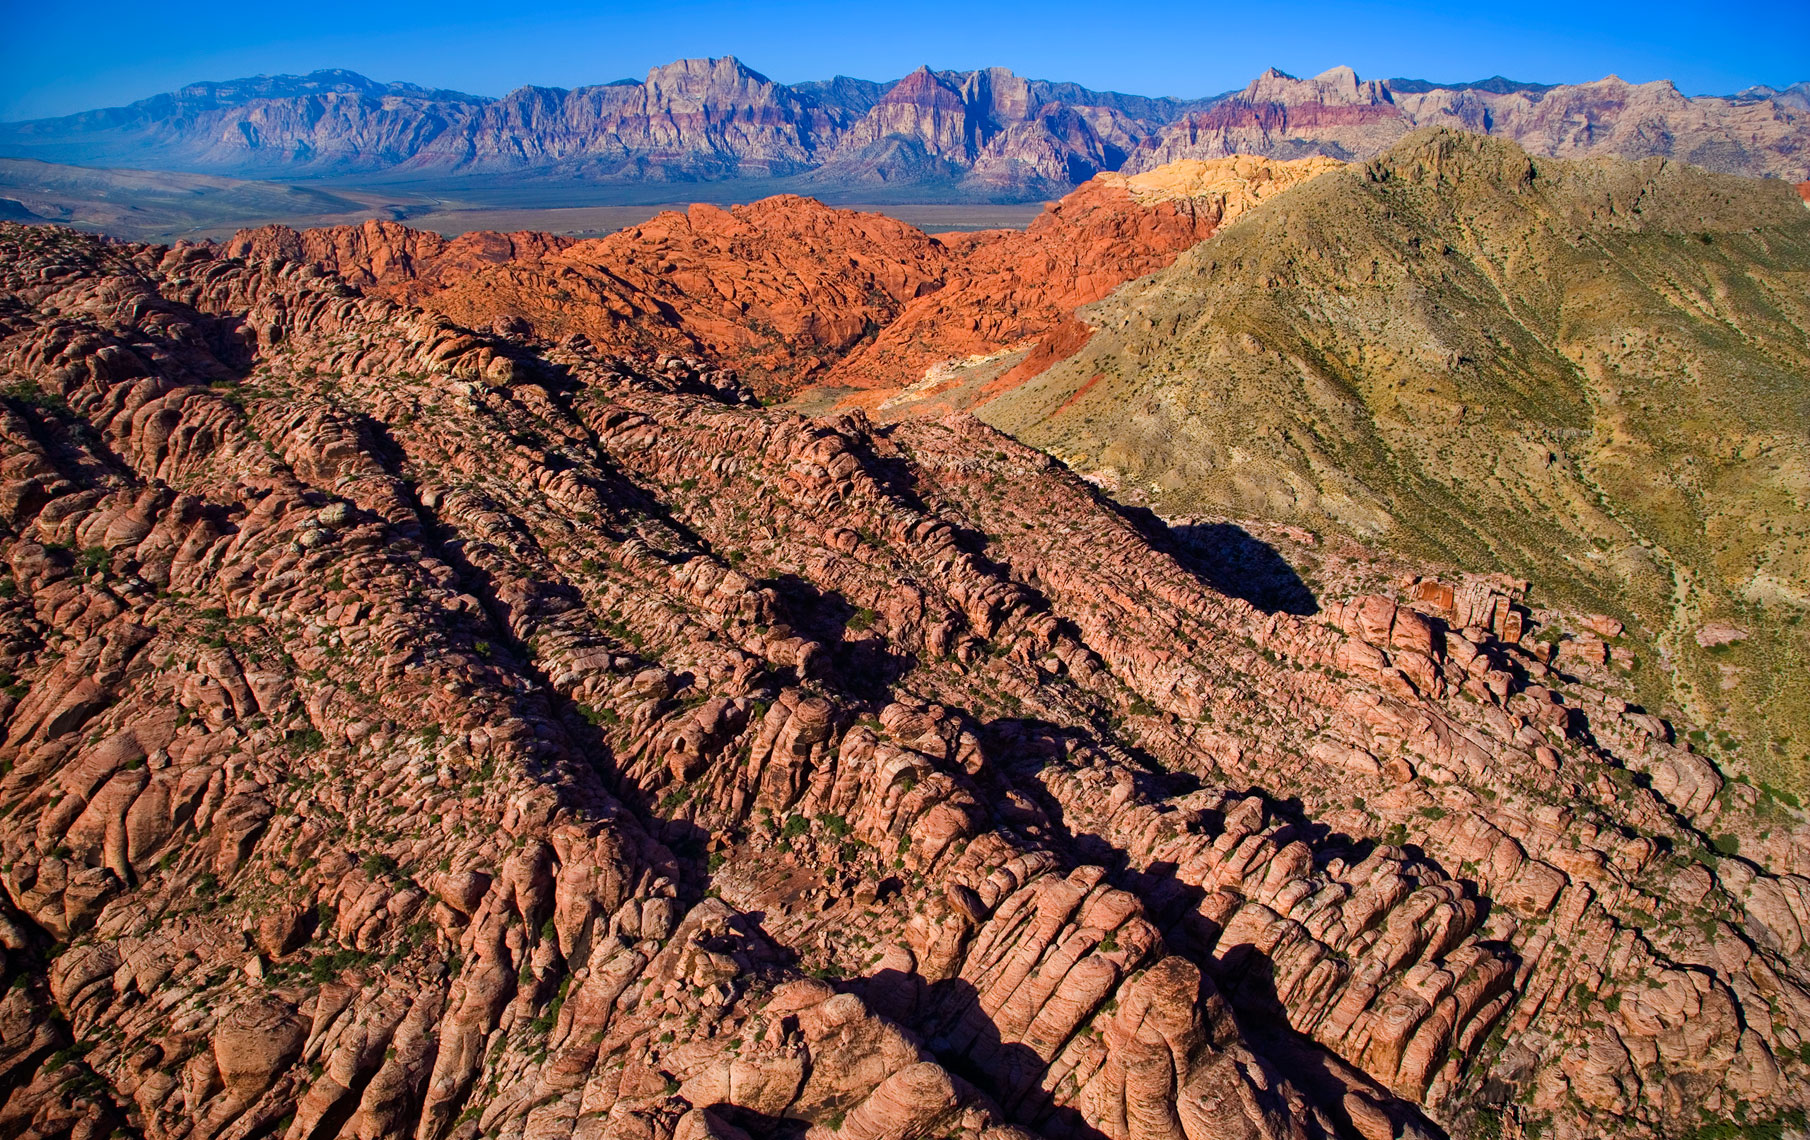 Aerial of Red Rock Canyon State Park with spectacular rock formations